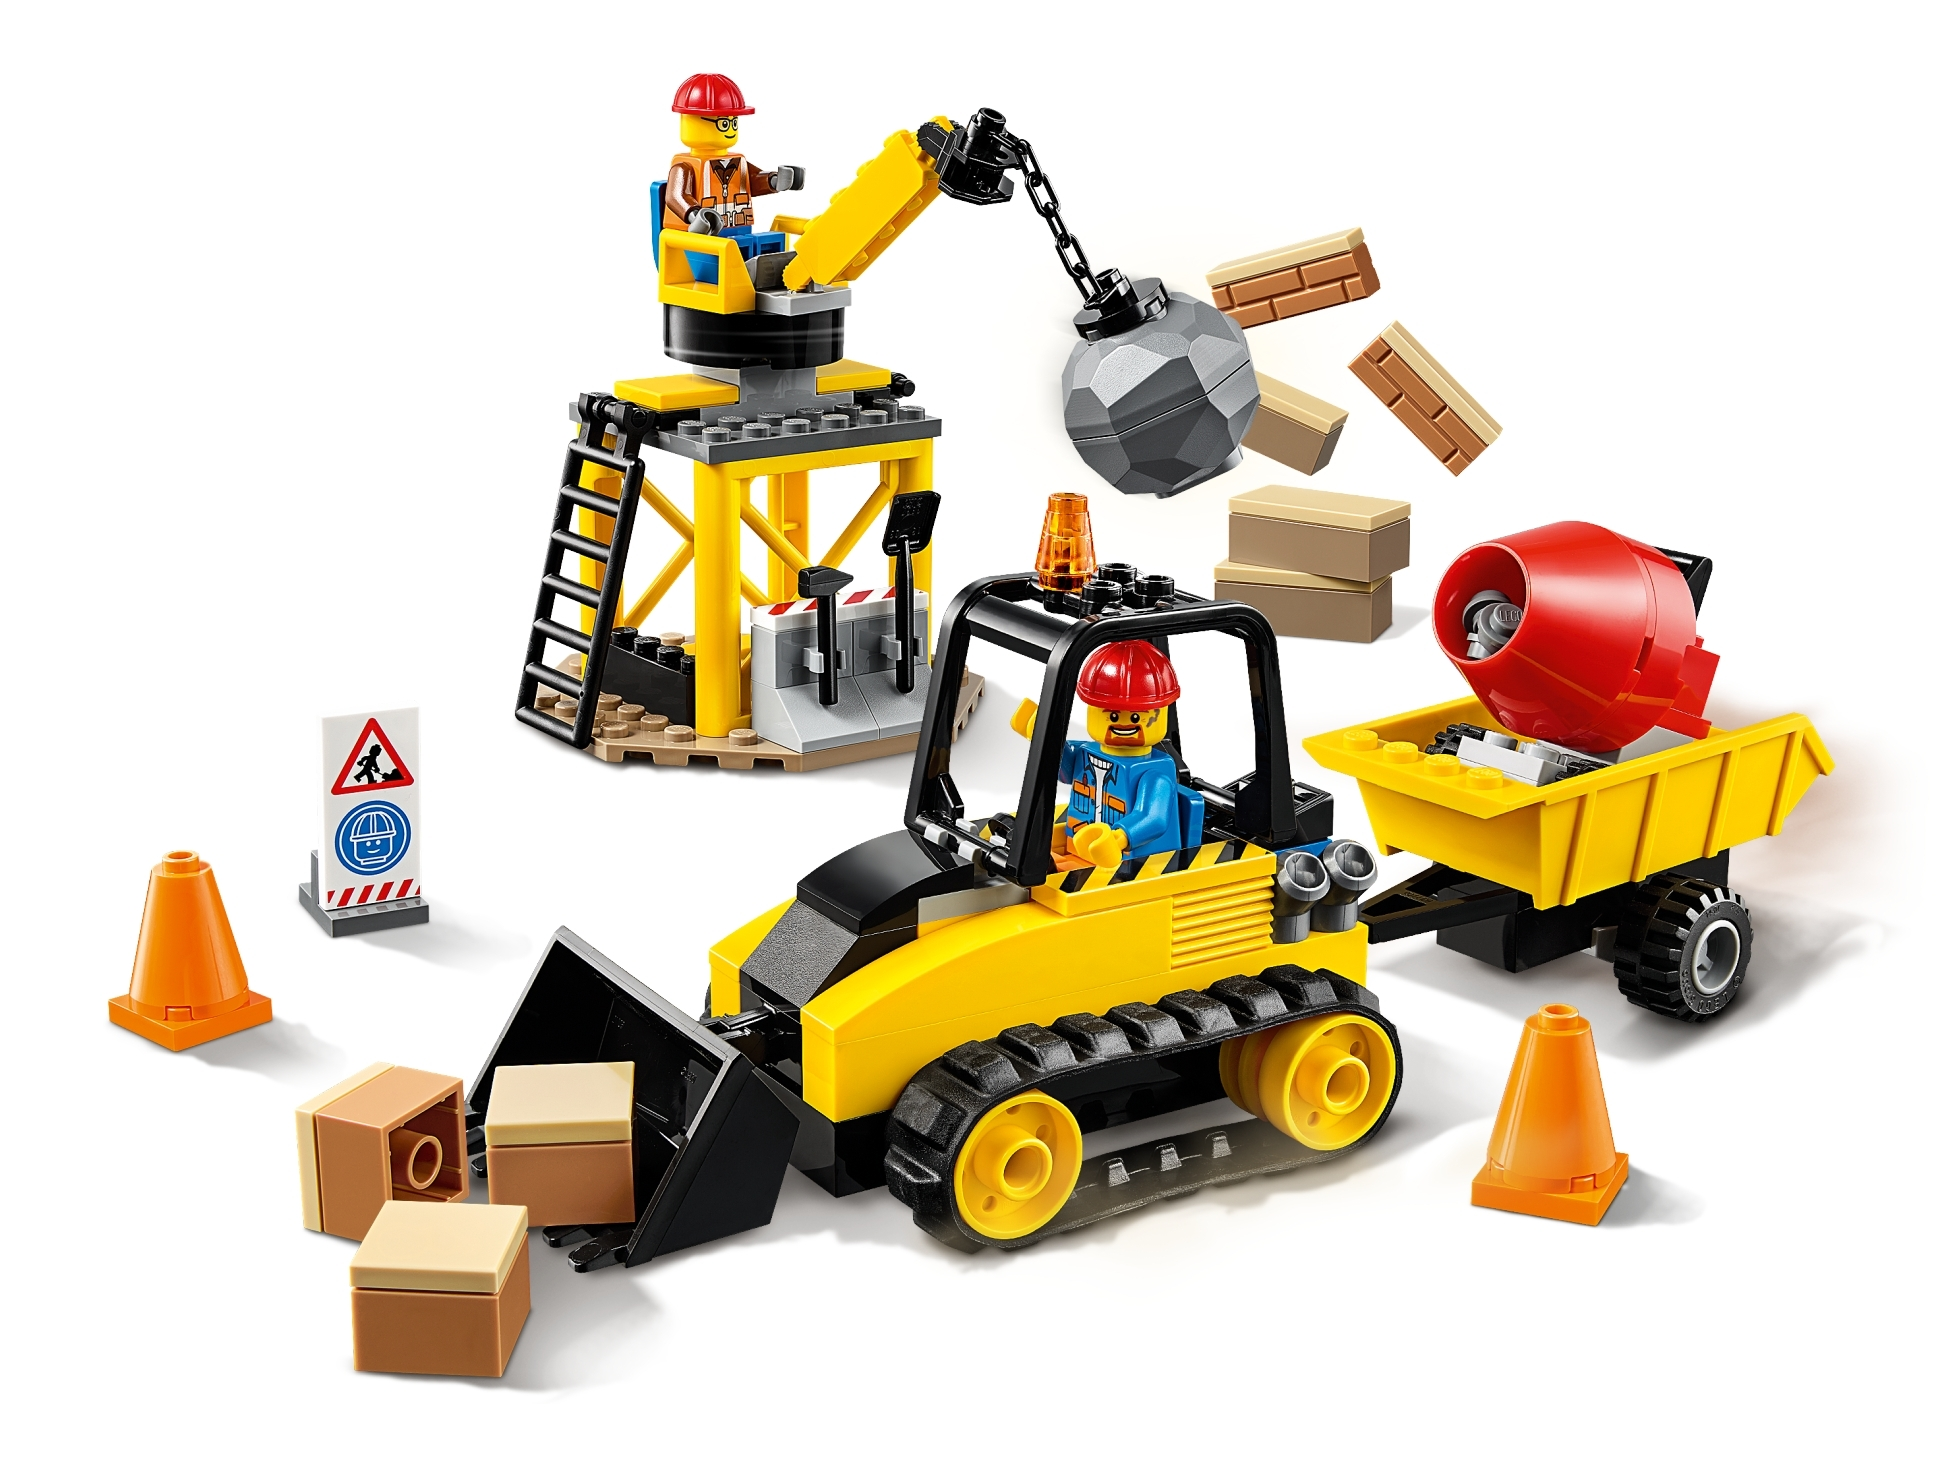 60252 City Lego Construction Bulldozer Toy Building Set for Kids New Boxed